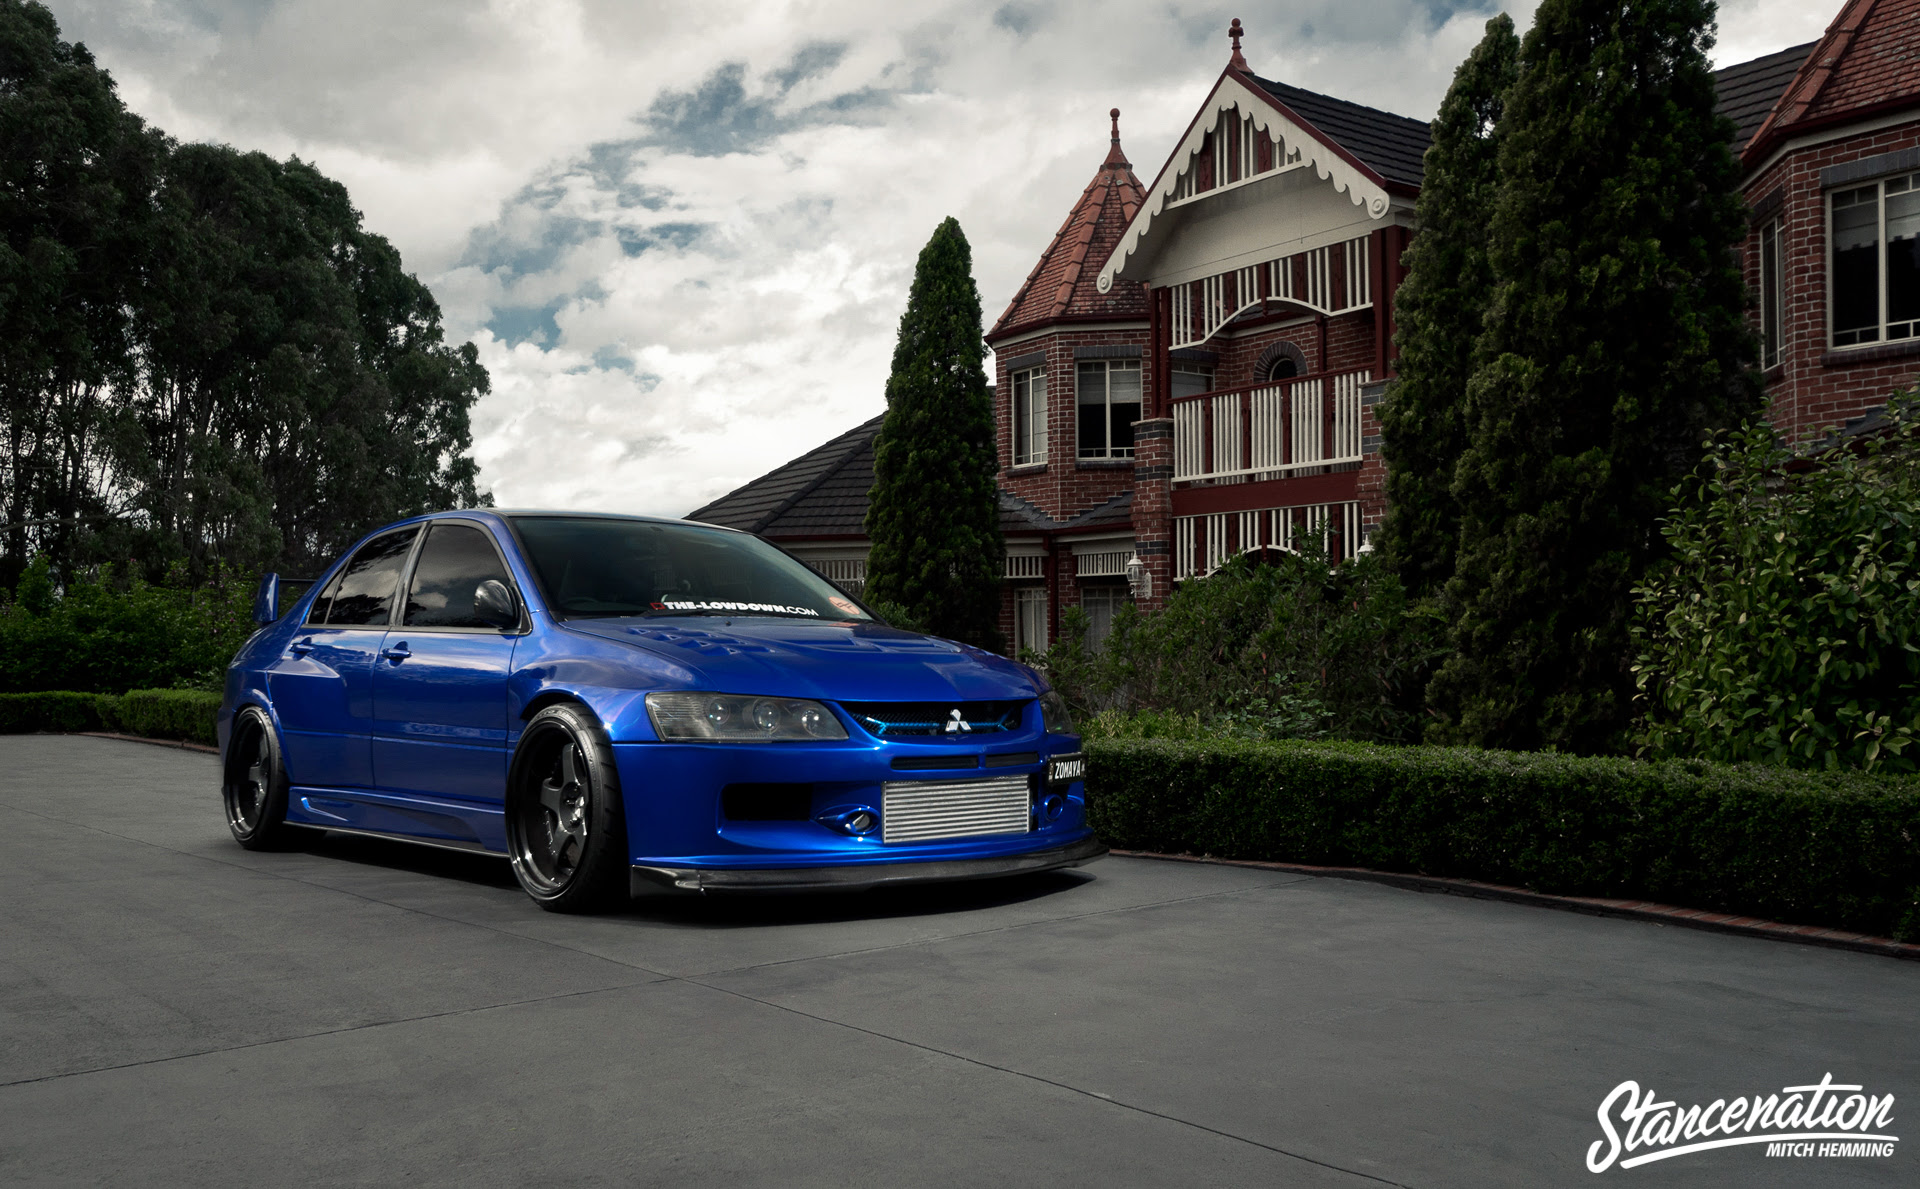 Epitome Of Modification Michael Zomayas Widebody Evo